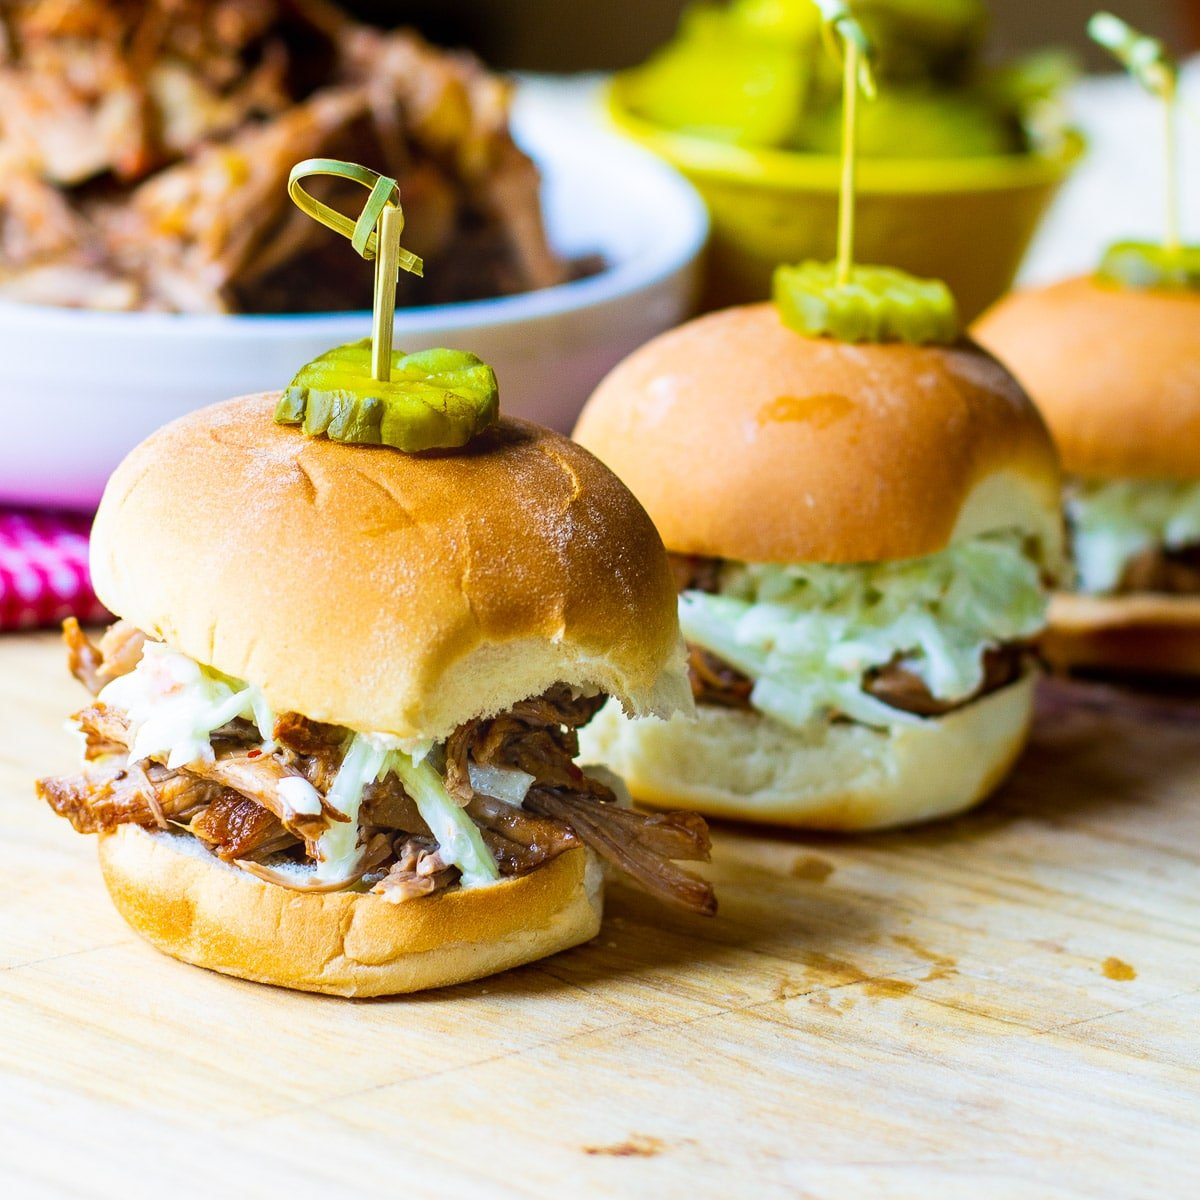 Slow Cooker Carolina-Style Pulled Pork on slider buns with slaw.